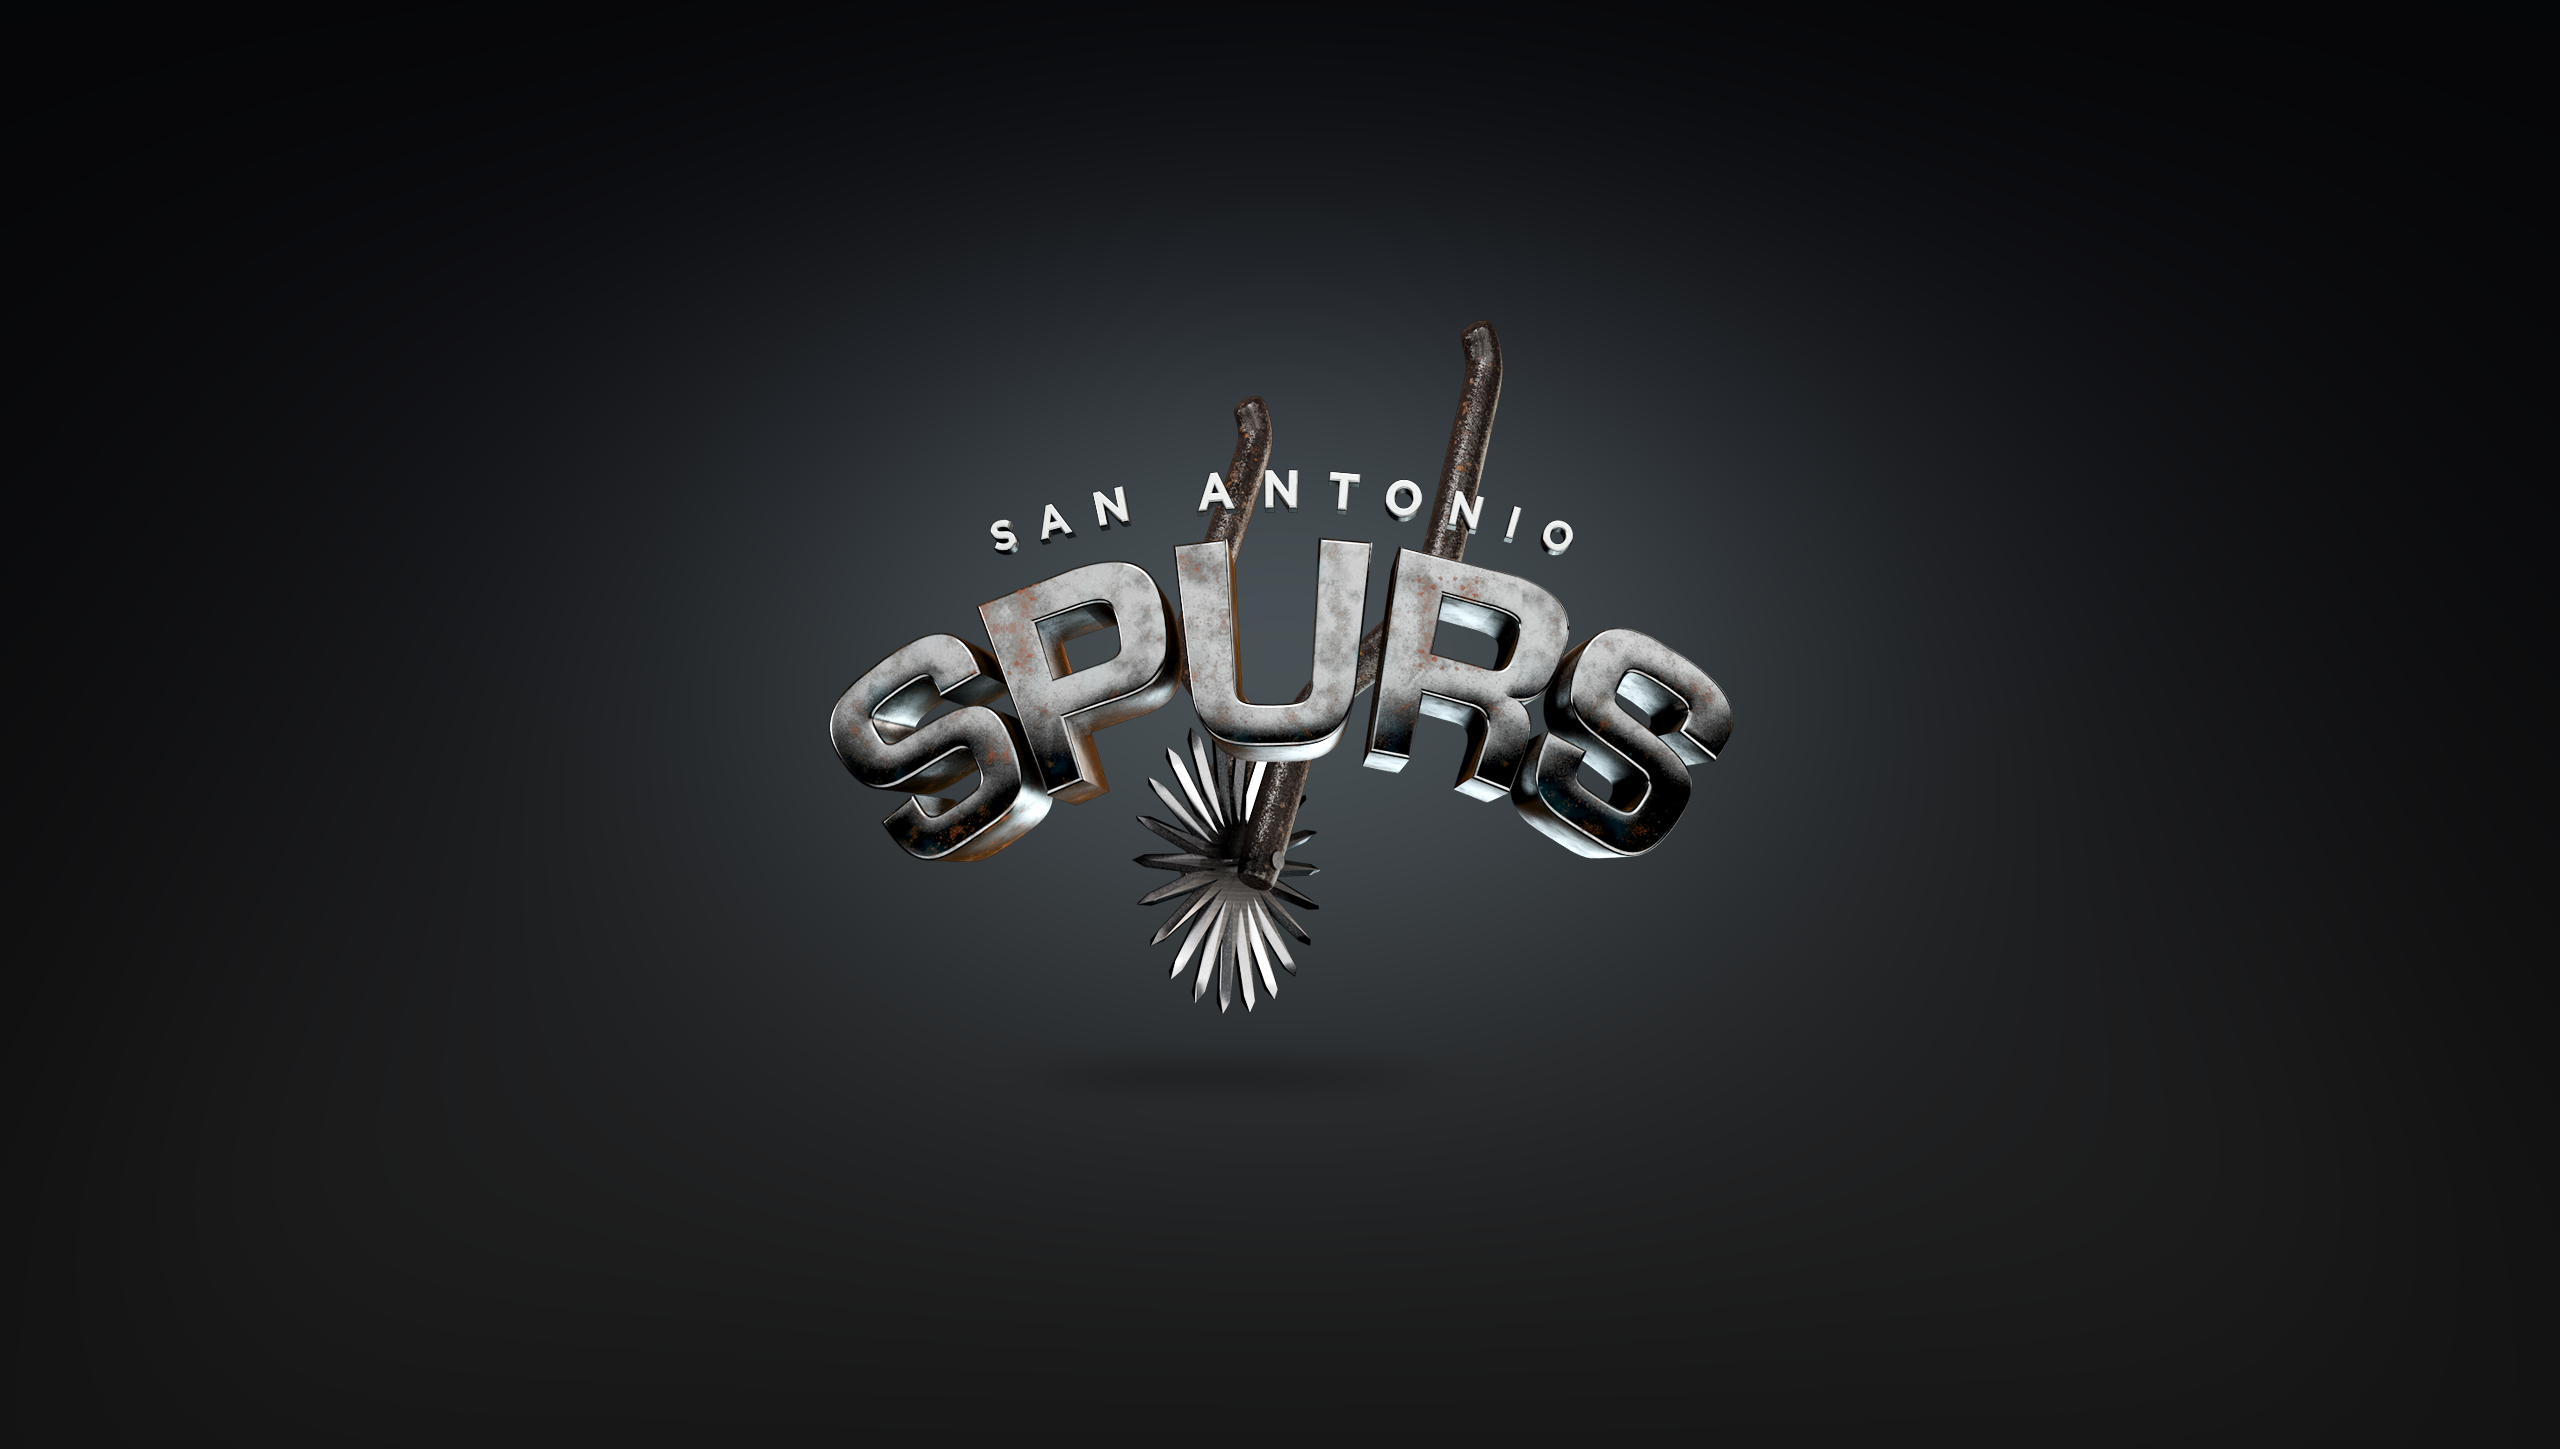 Amazing 27317474 Spurs Wallpapers | 2560x1449